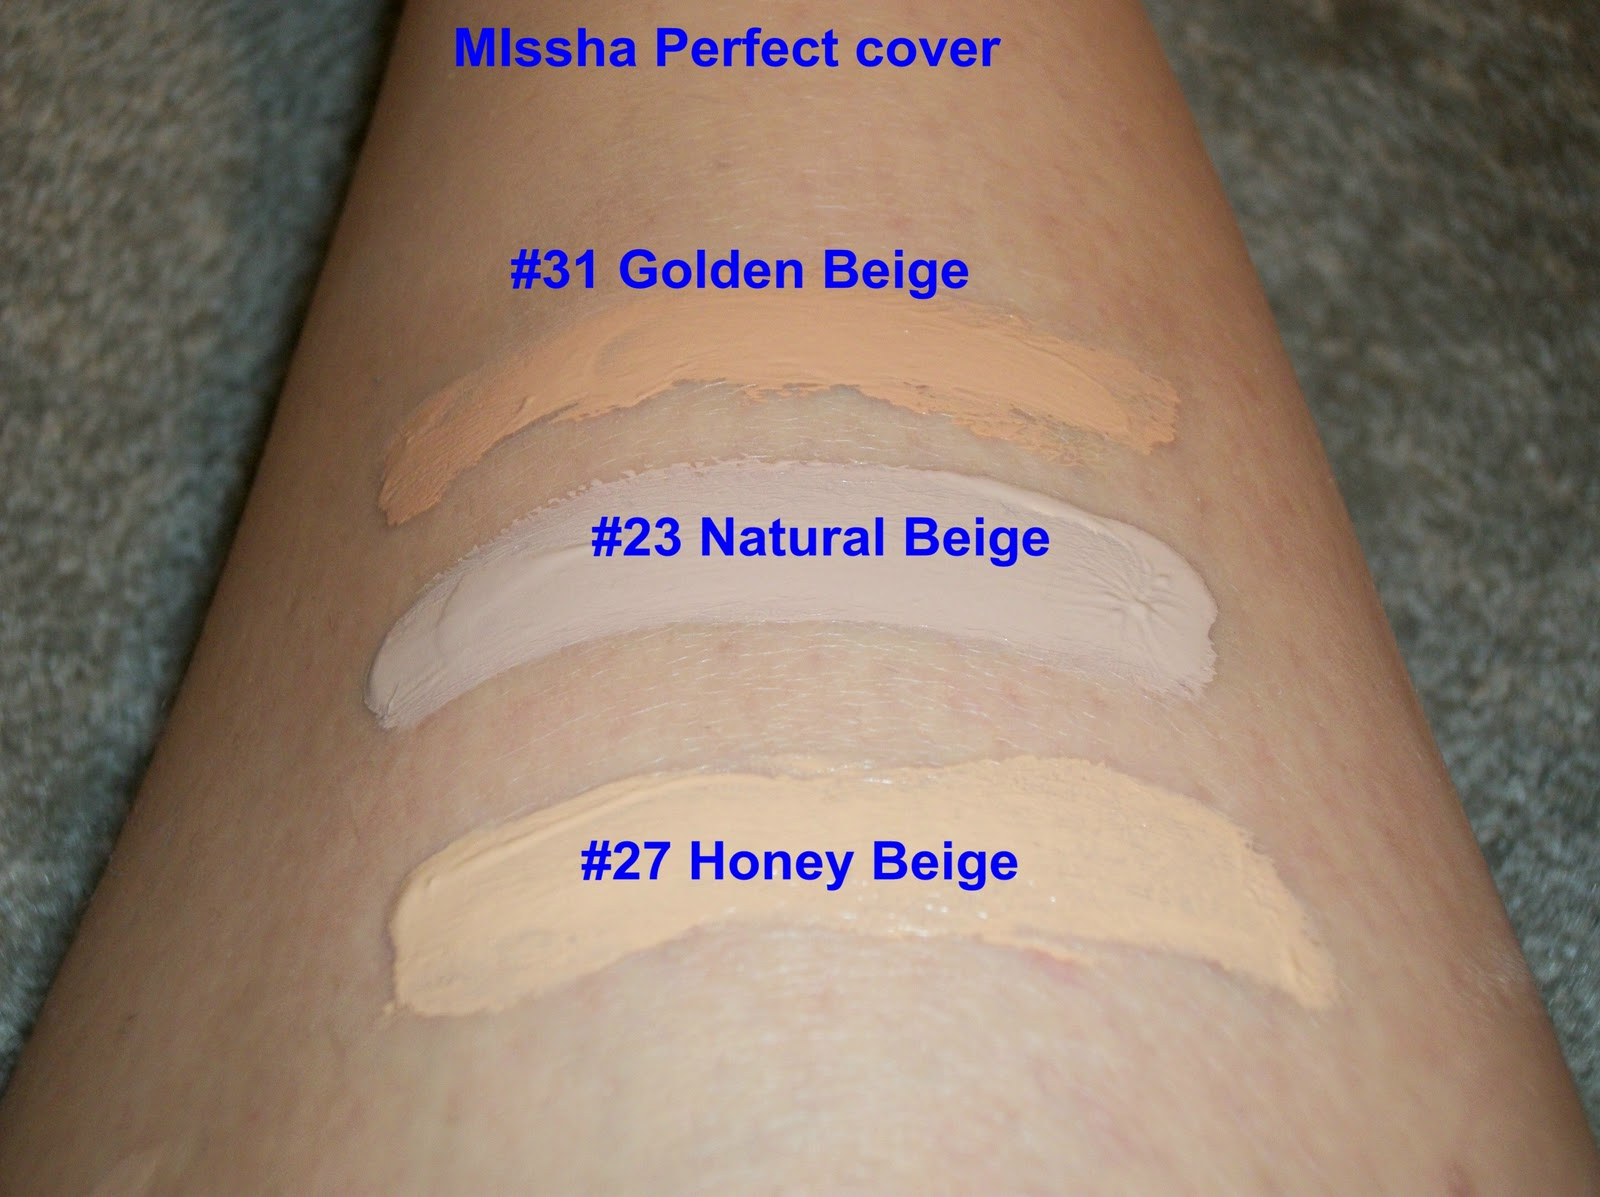 M Perfect Cover BB Cream RX SPF 42 by Missha #10